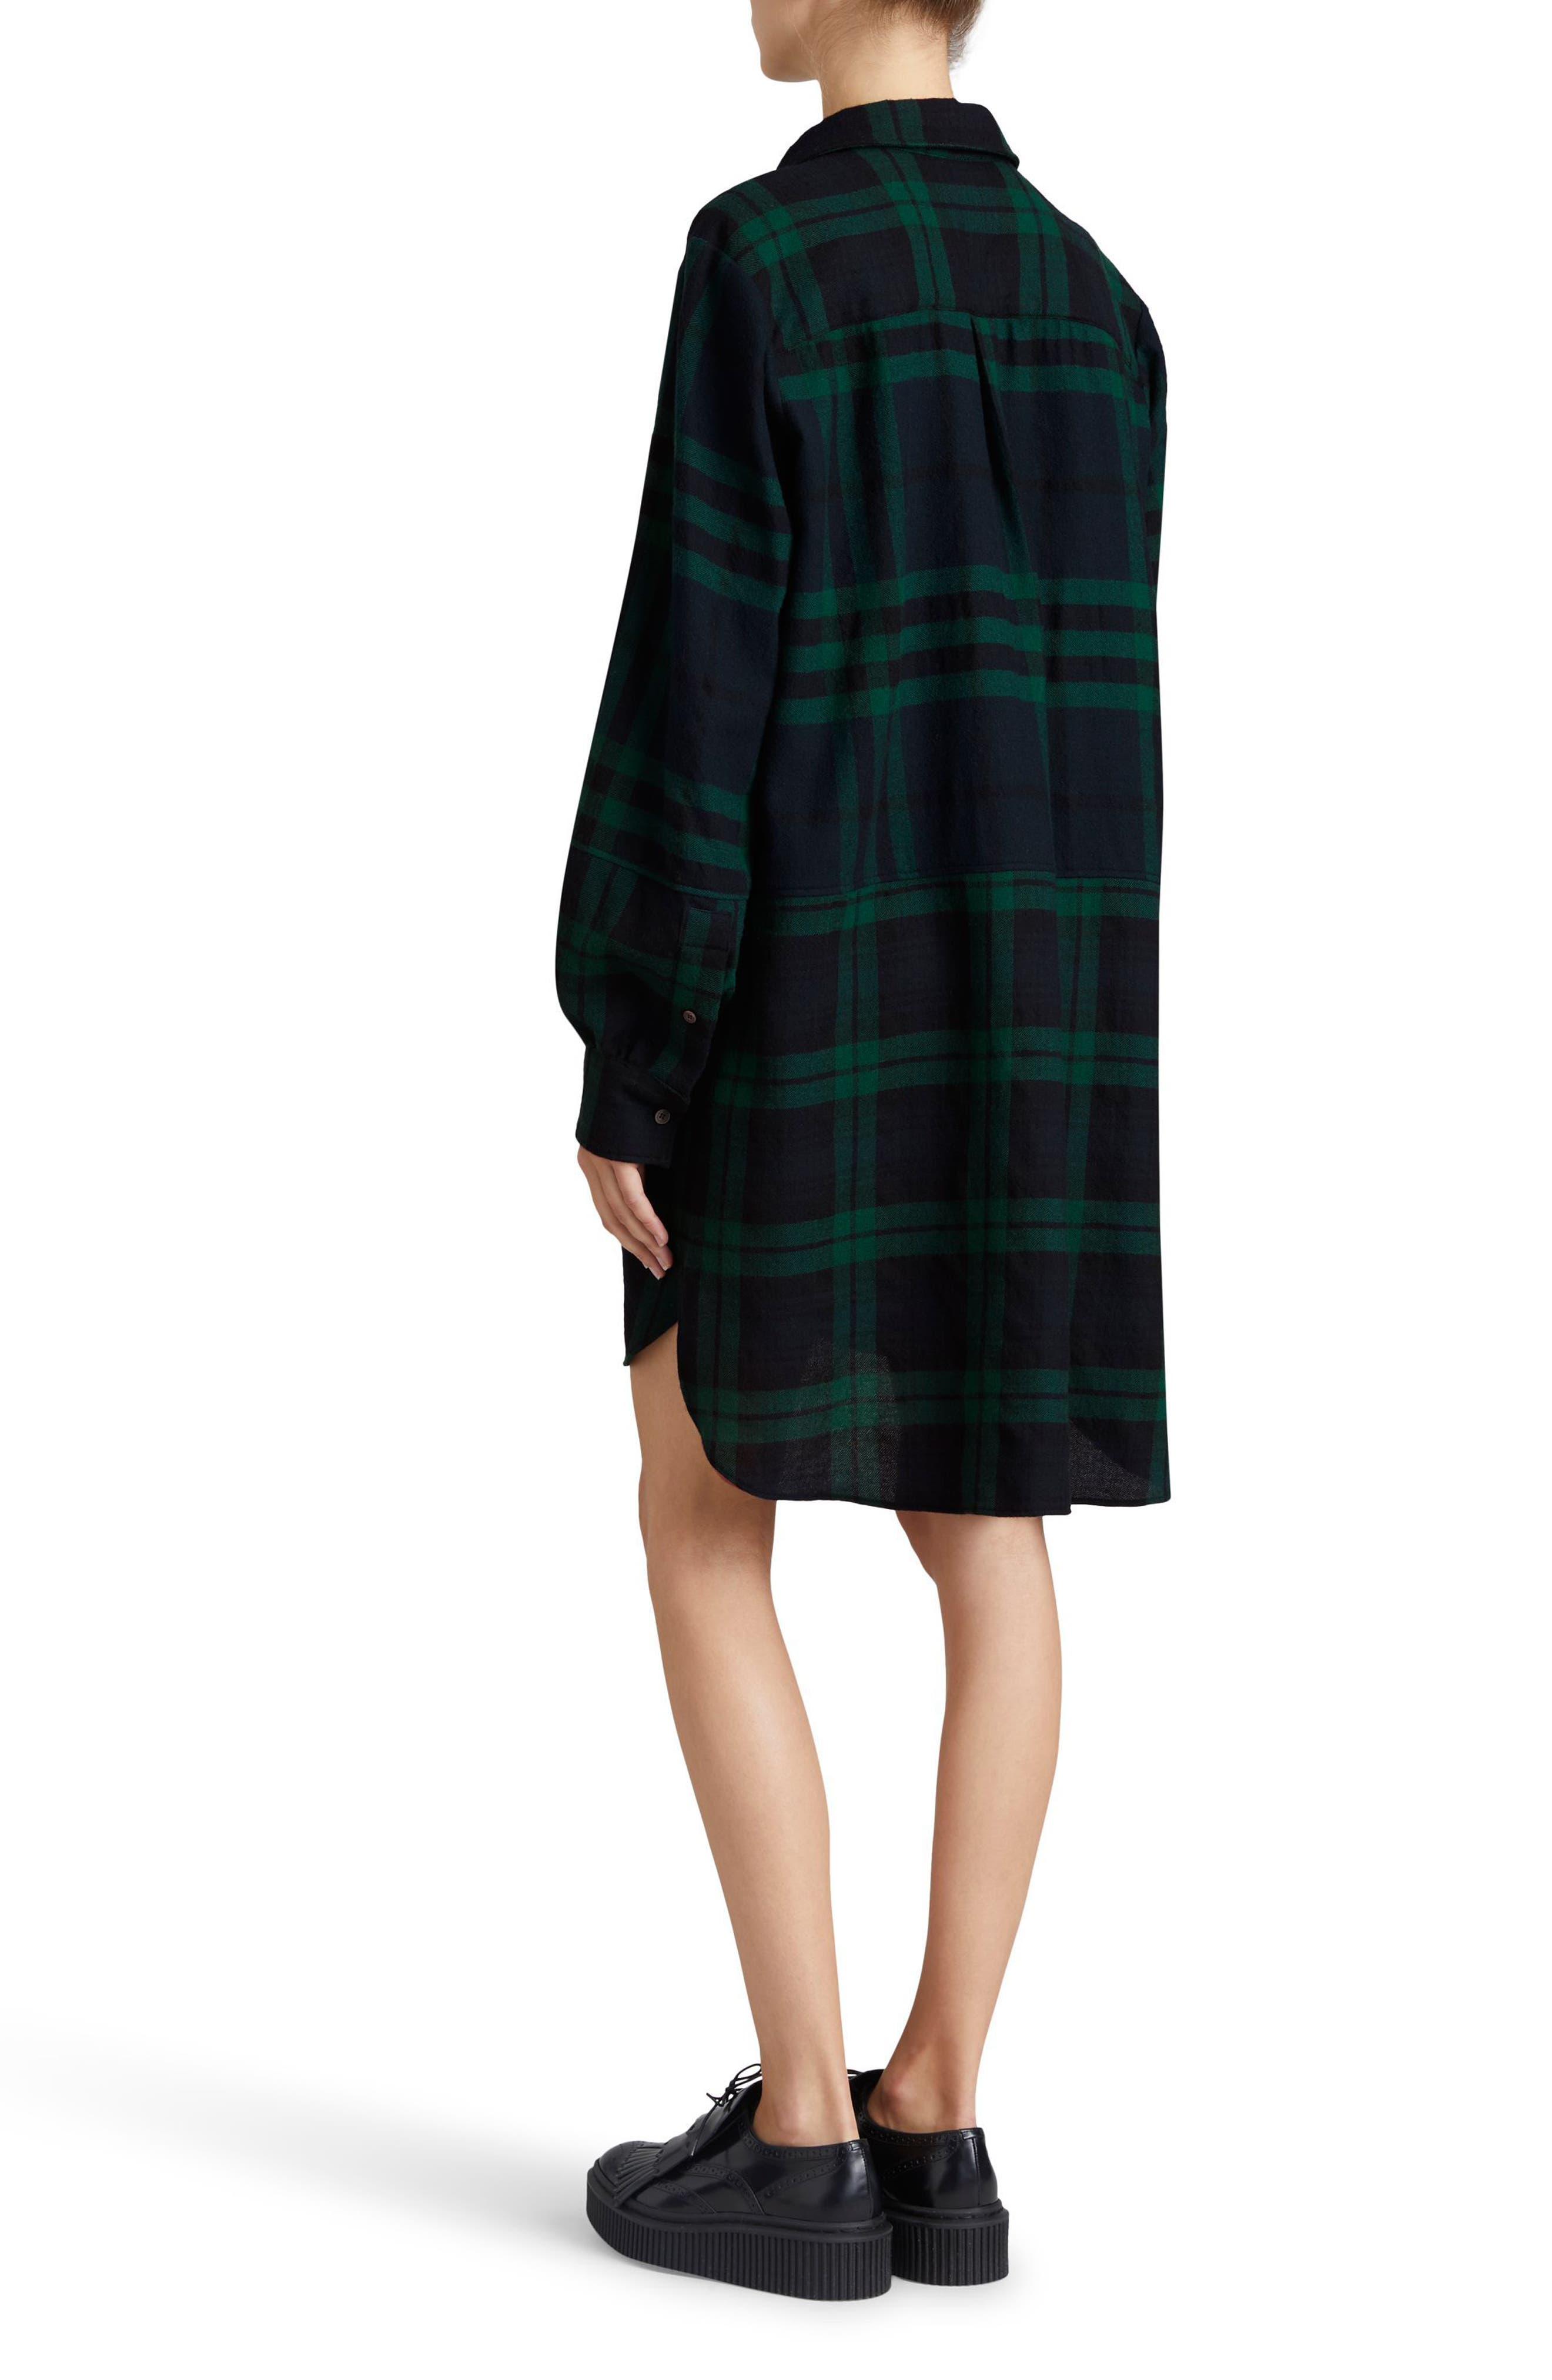 BURBERRY,                             Kylie Check Wool Shirtdress,                             Alternate thumbnail 2, color,                             410